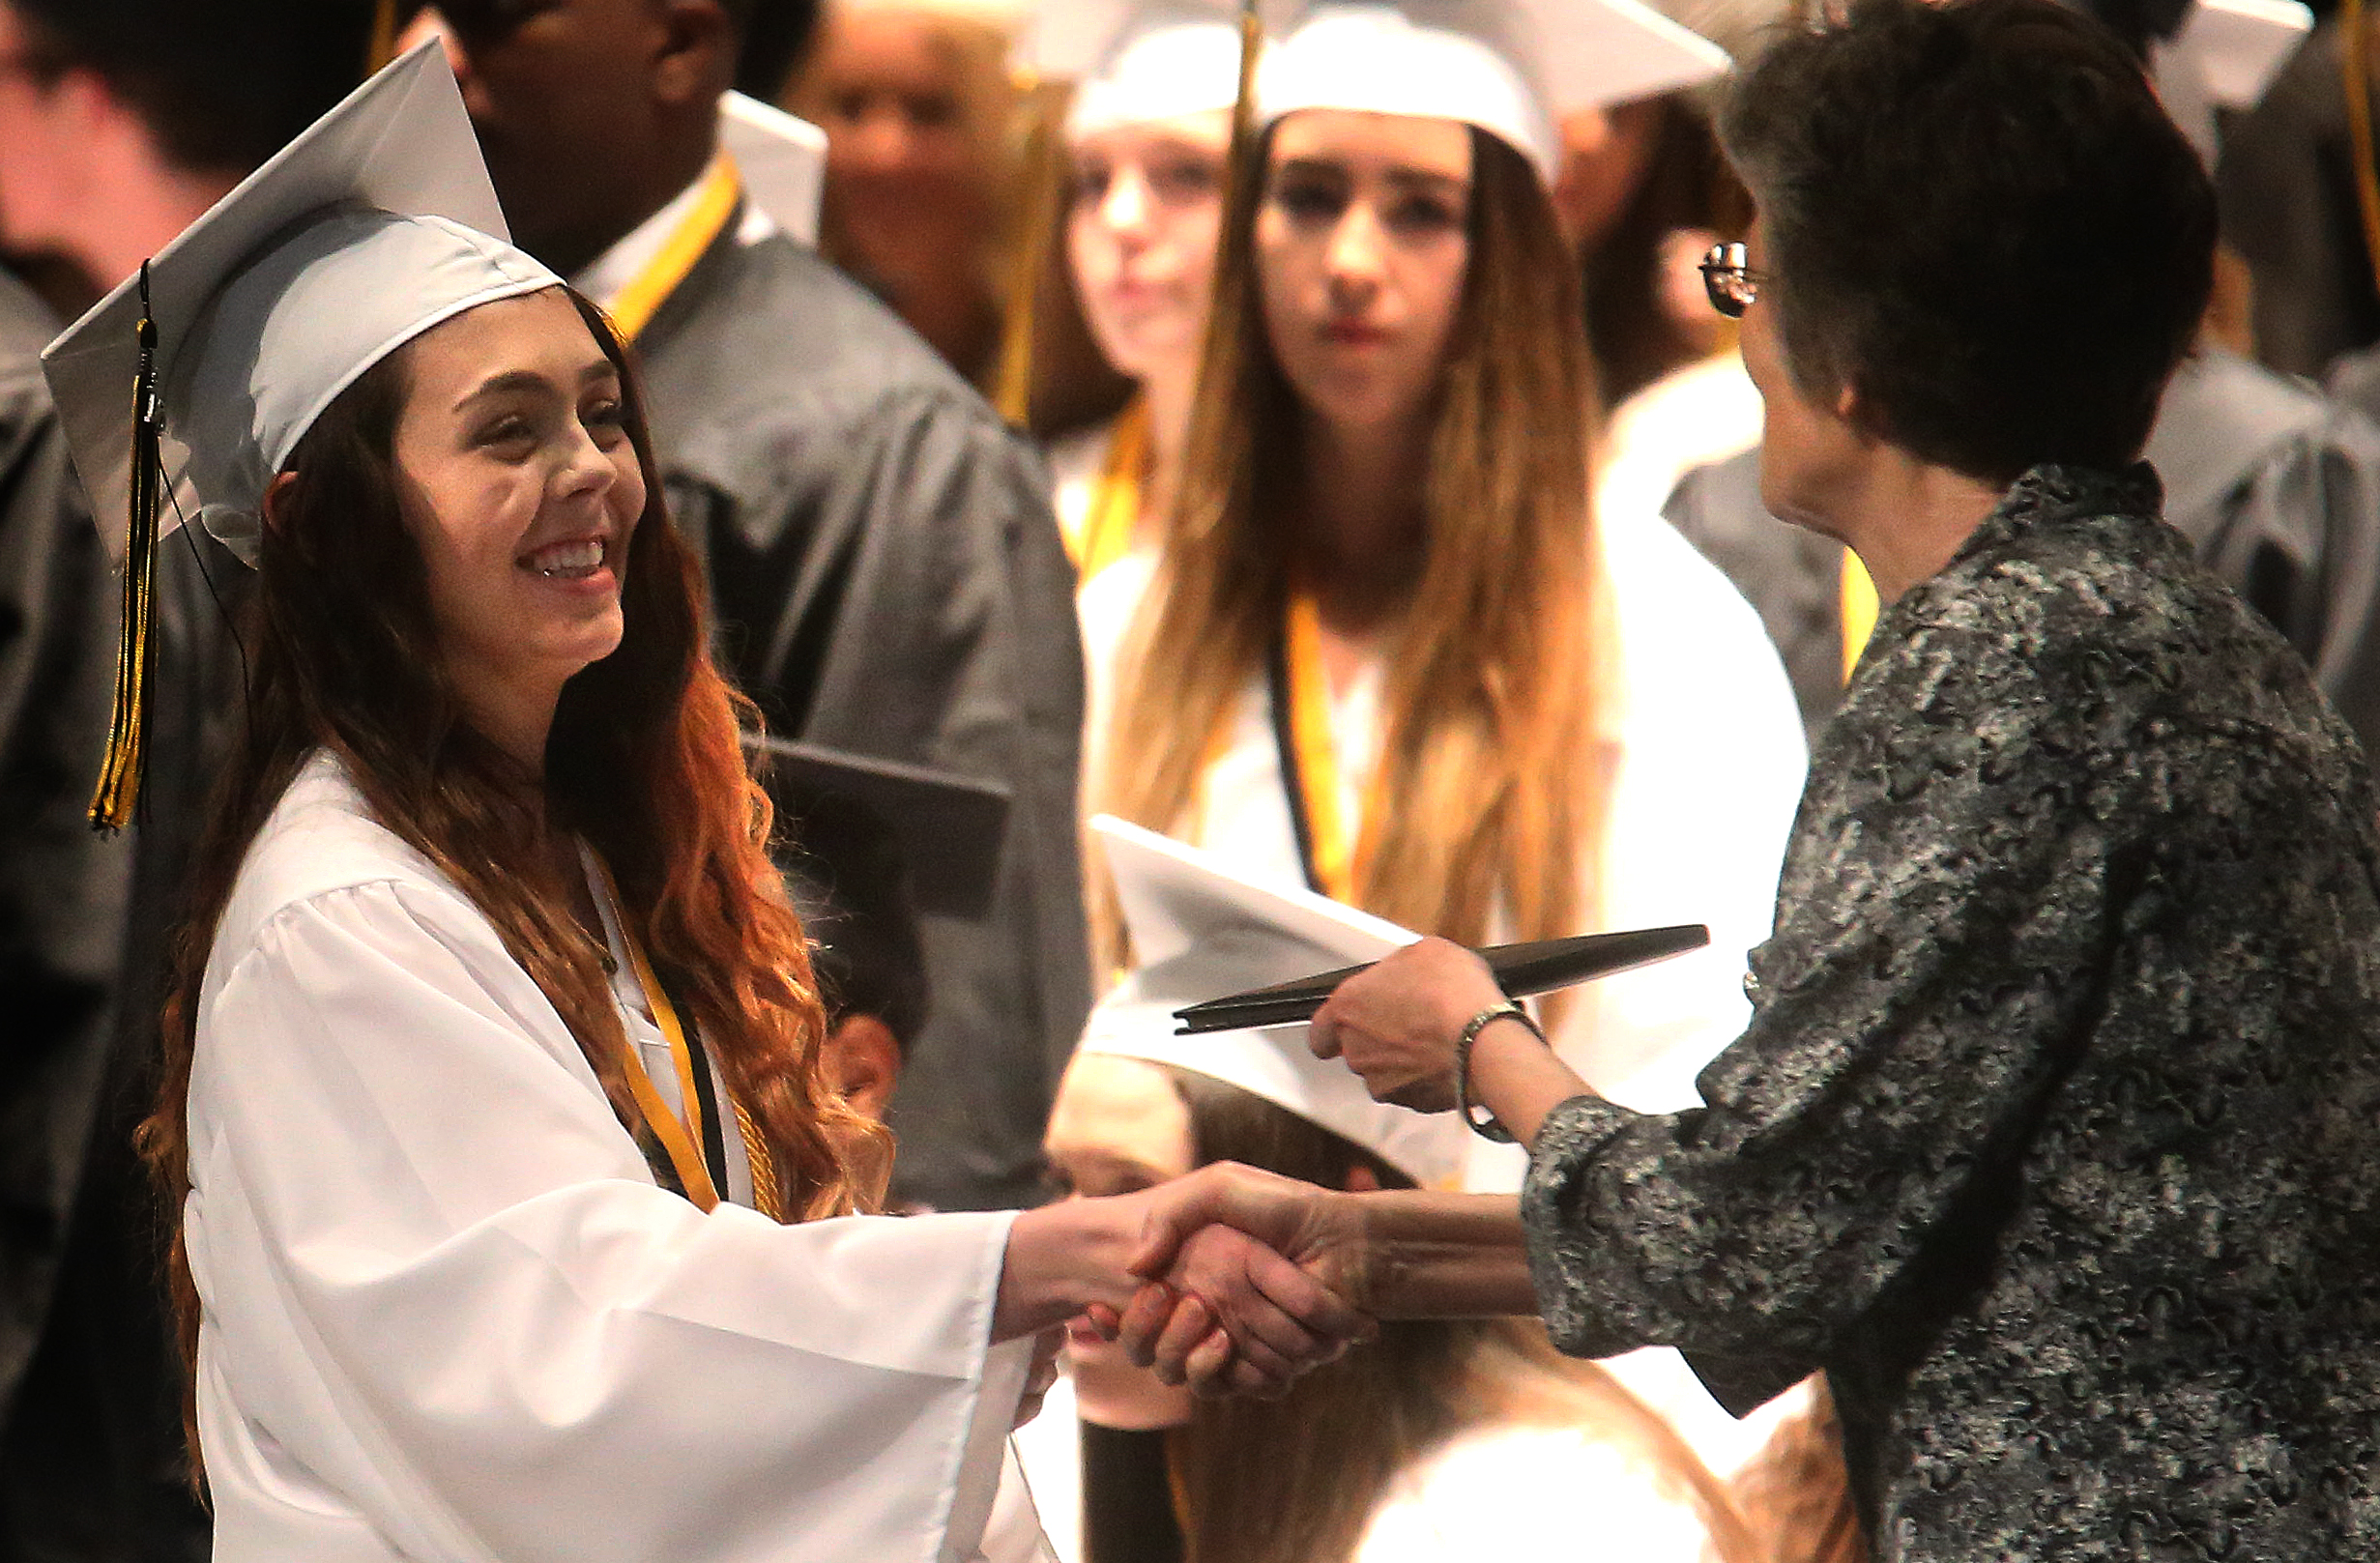 Victoria Londrigan receives her diploma from school principal Sister Margaret Grueter on Sunday. David Spencer/The State Journal-Register